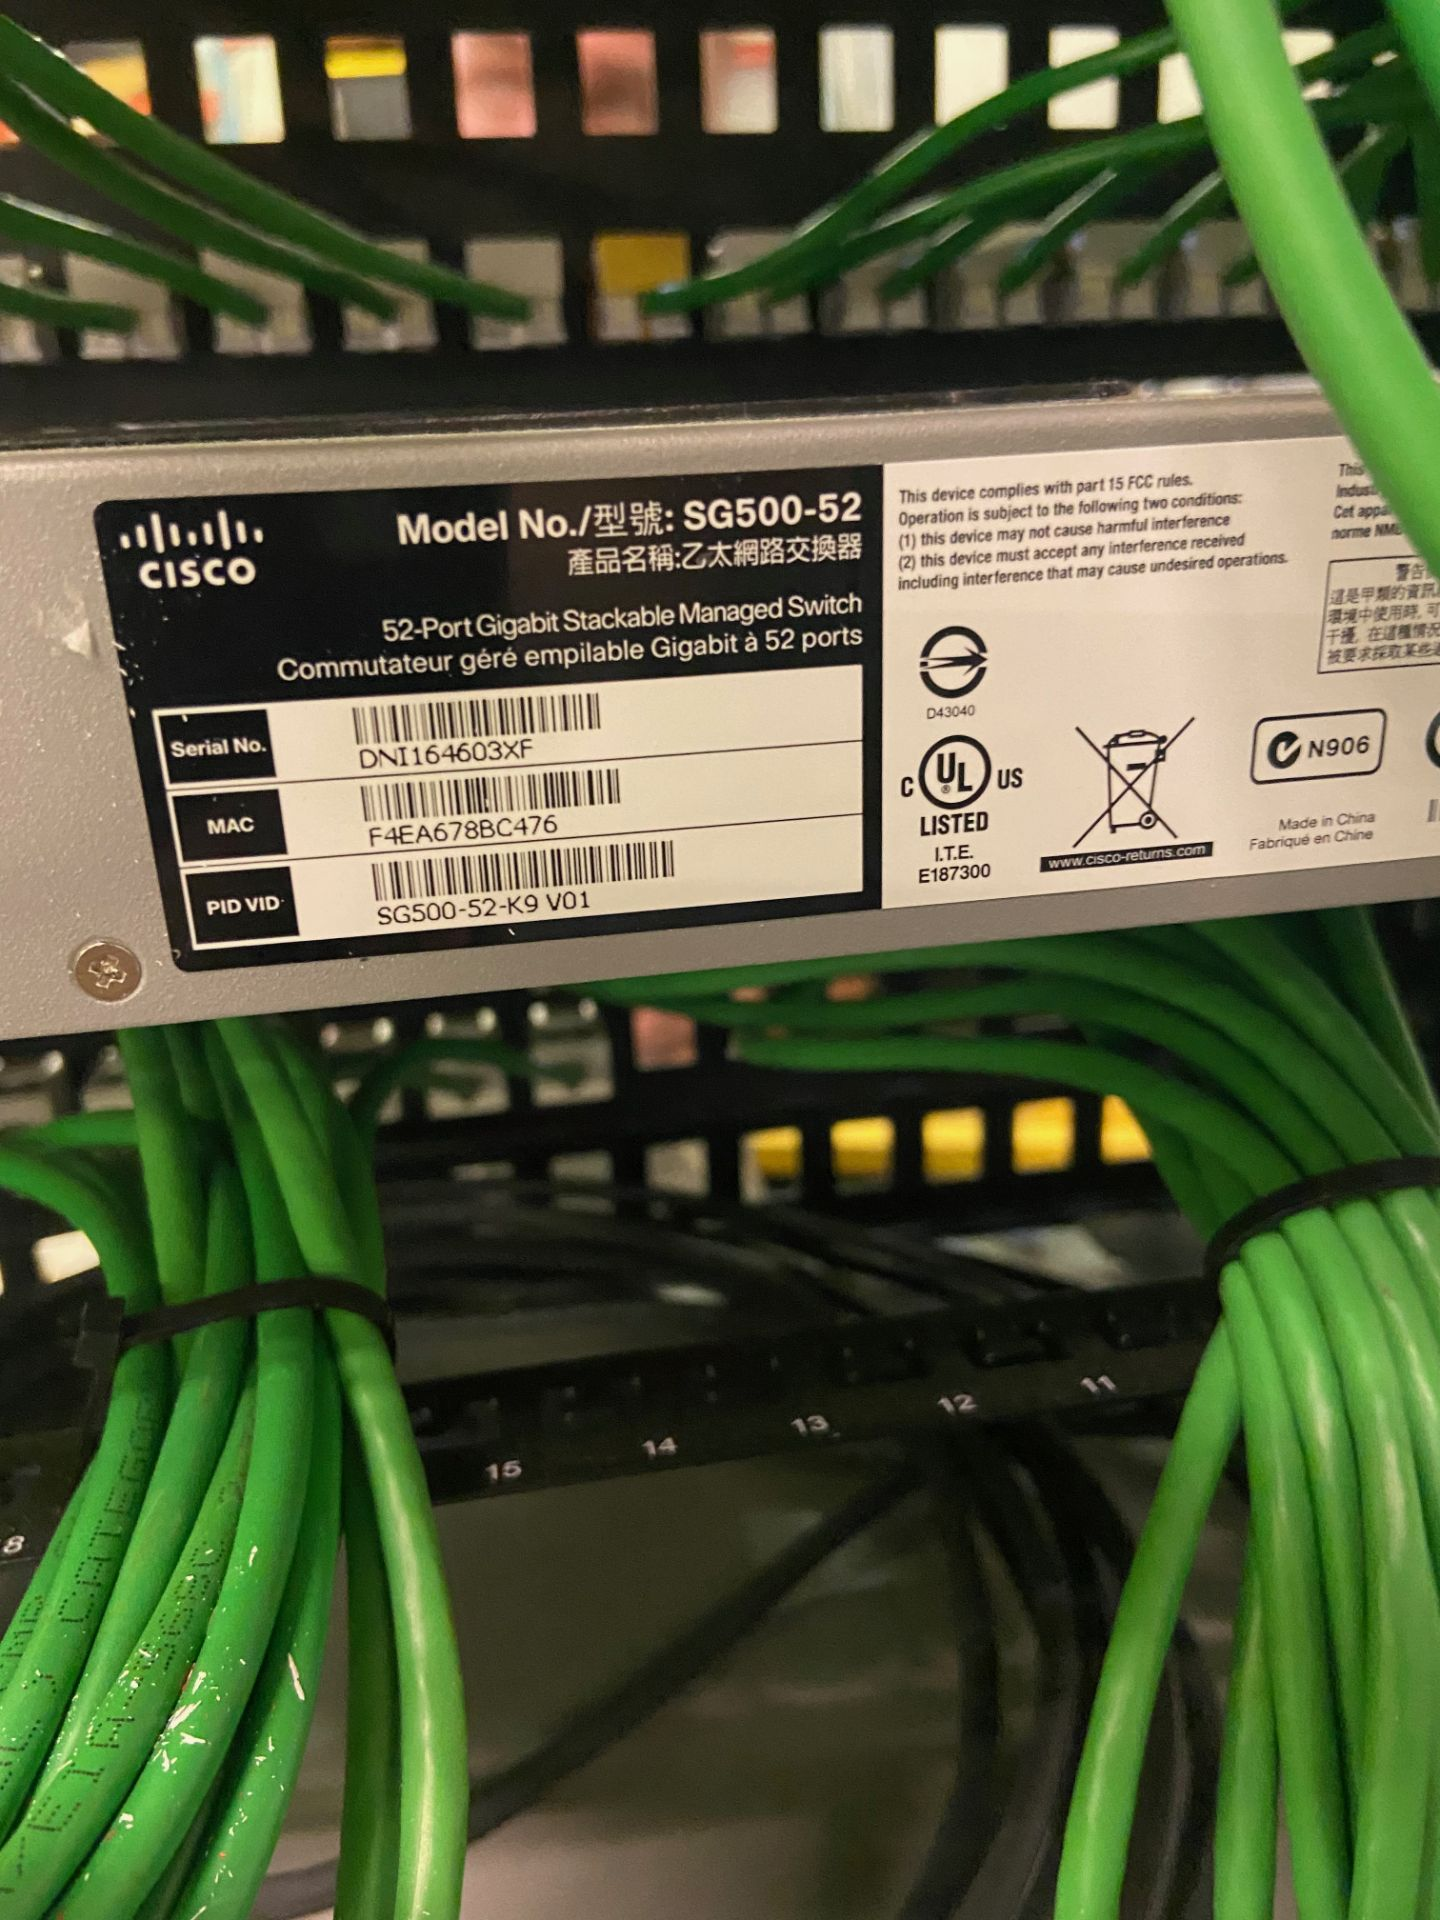 Lab Ethernet Connectivity Hub, SFP Interconnected, Qty 3: Cisco 52-Port Gigabit Stackable Manged - Image 10 of 12